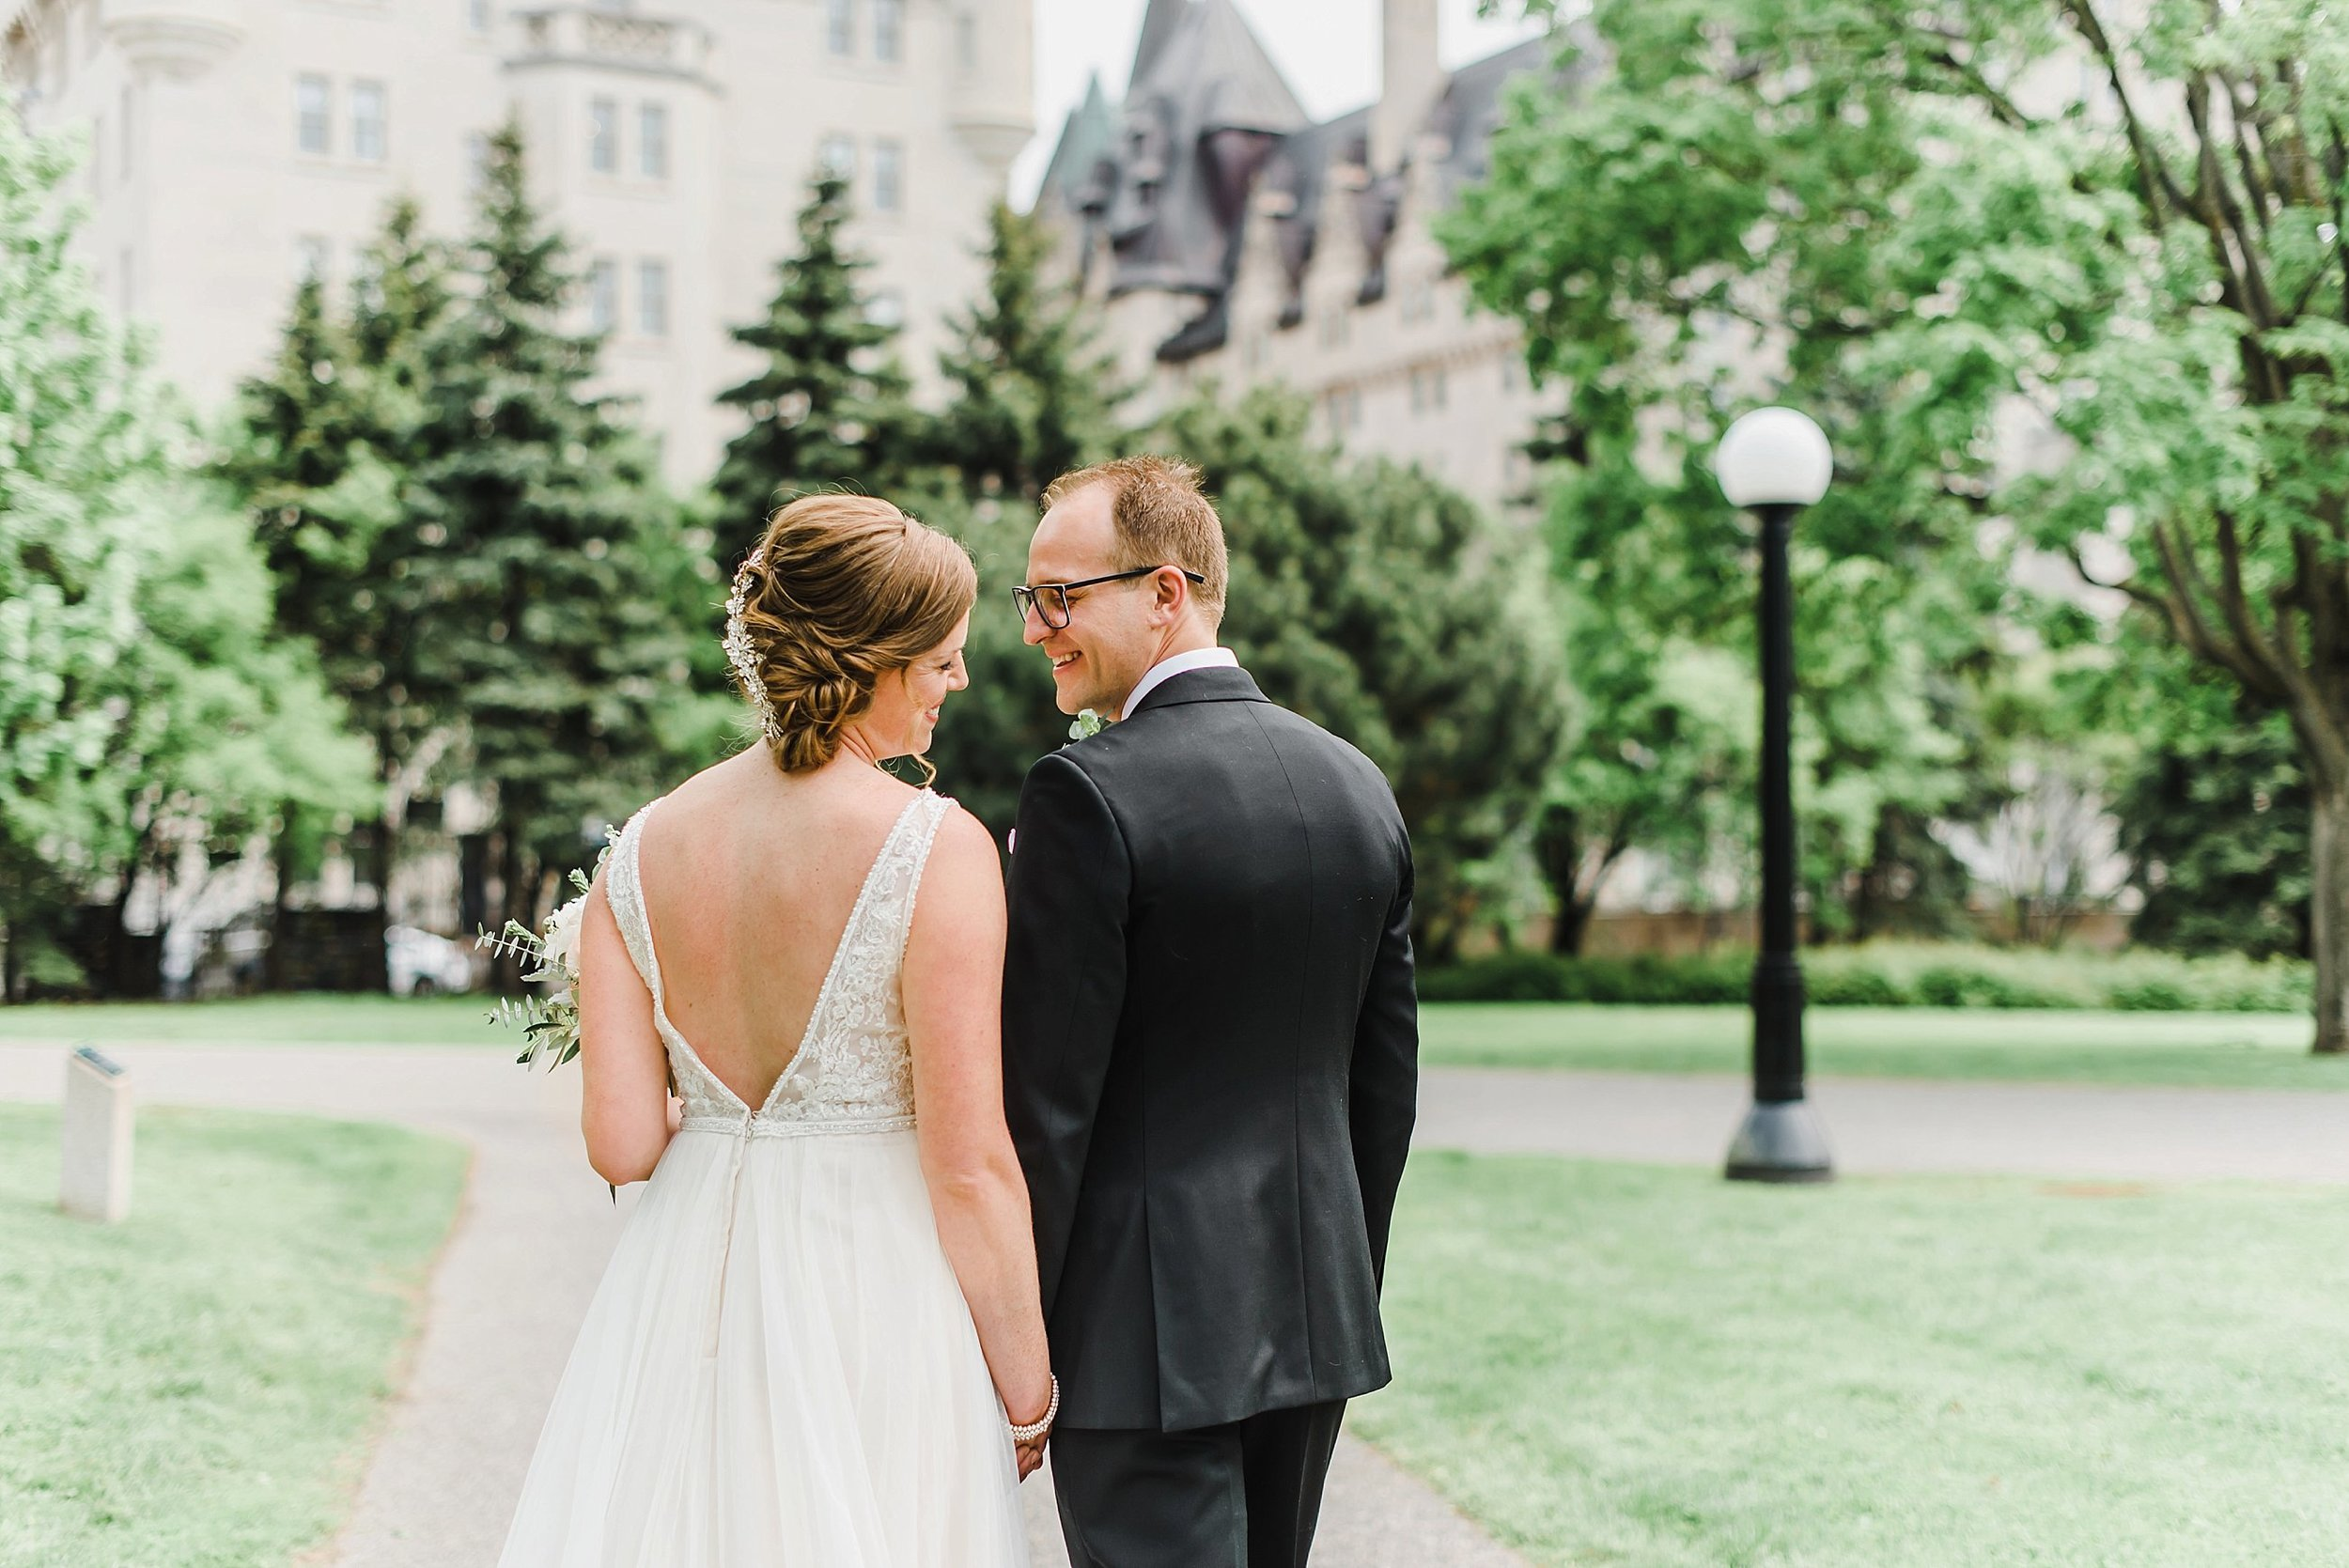 light airy indie fine art ottawa wedding photographer | Ali and Batoul Photography_0321.jpg